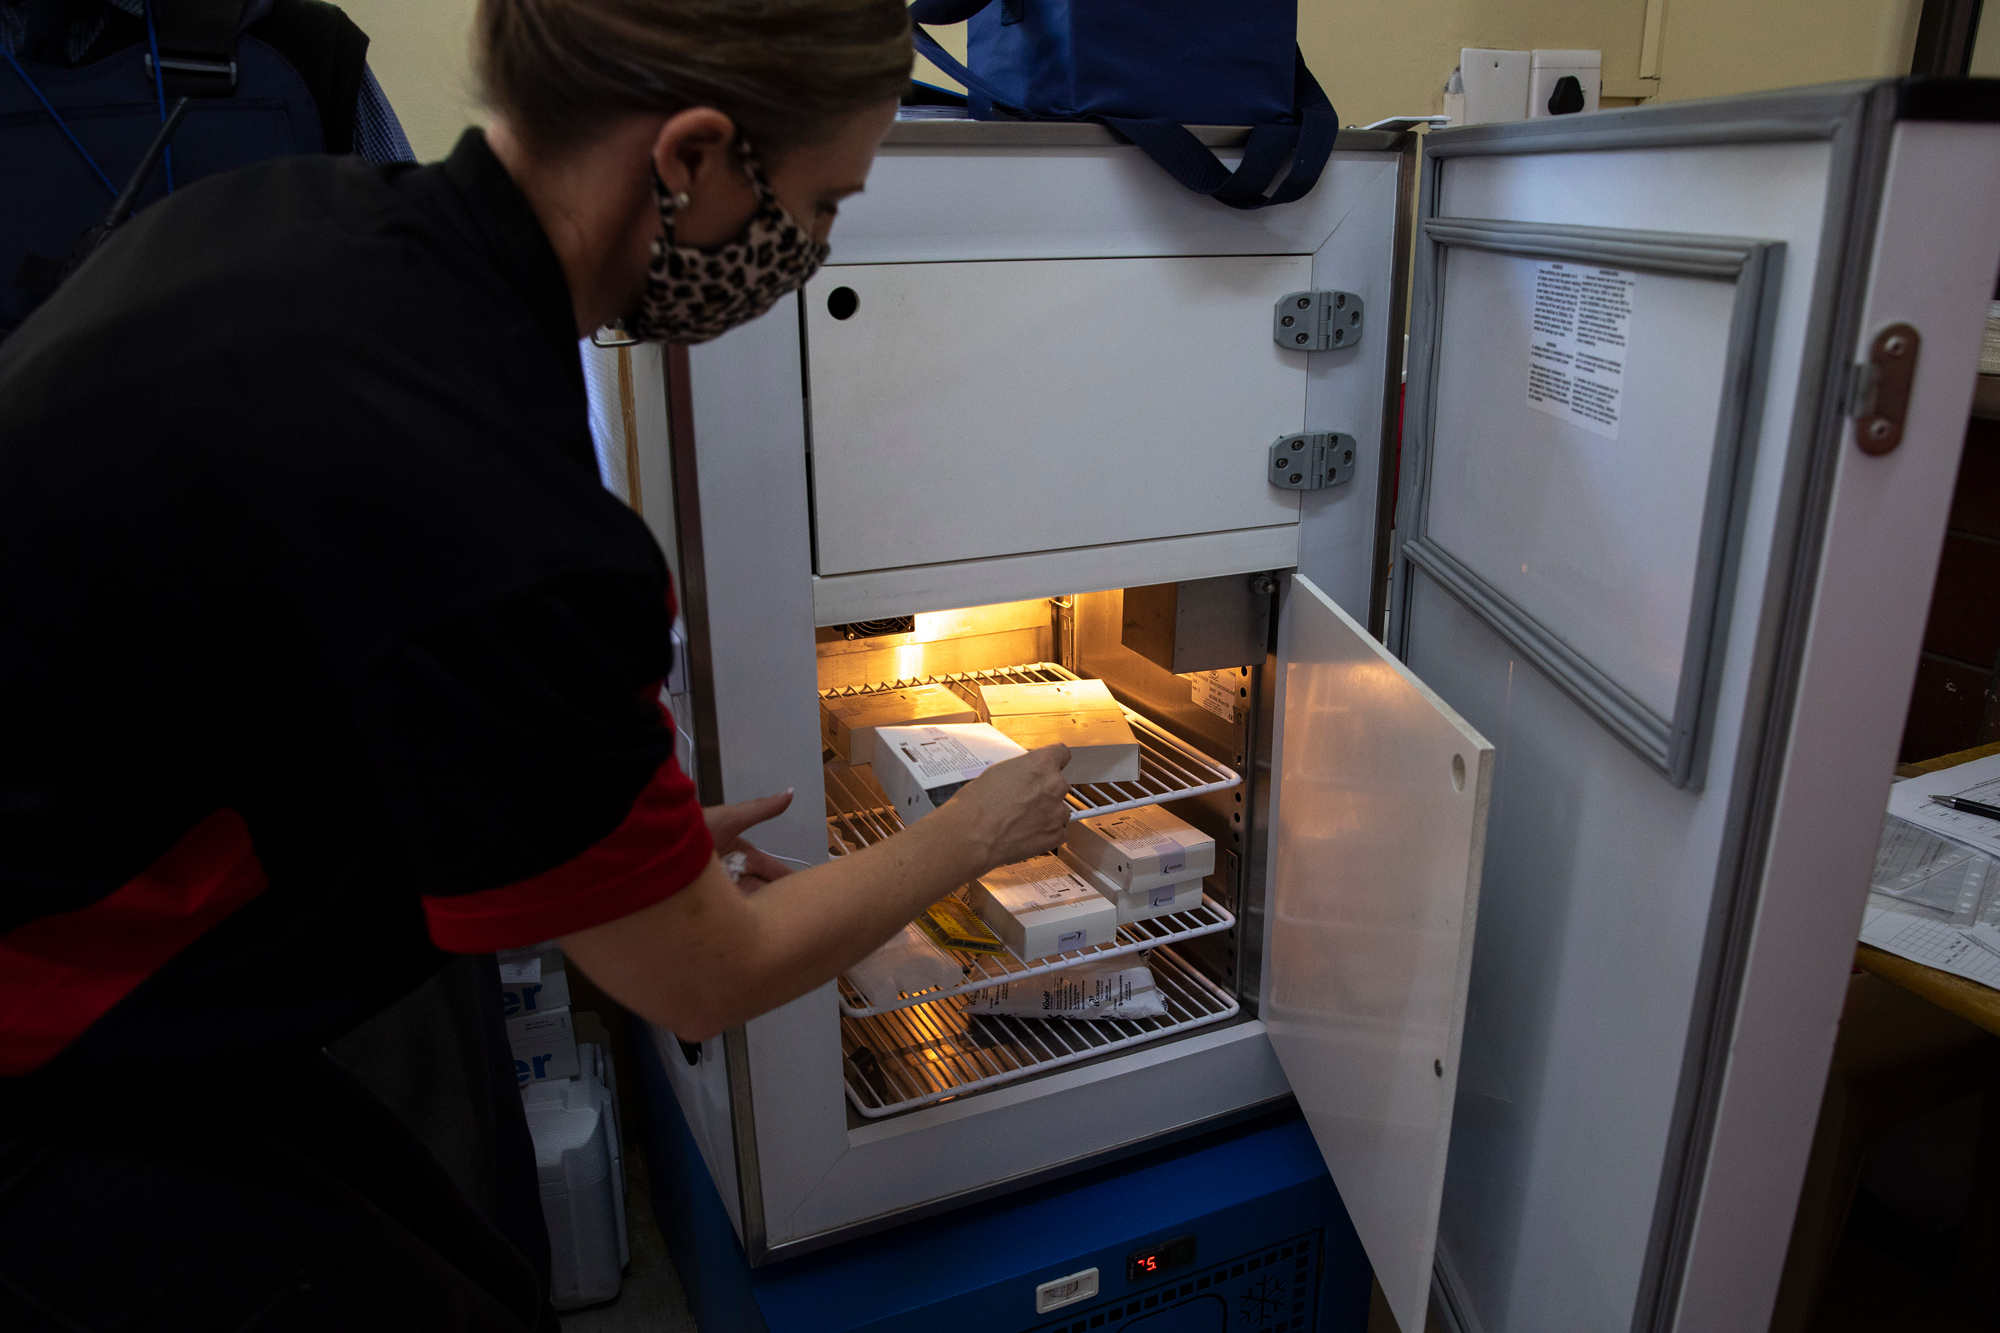 A healthcare worker takes out the Johnson & Johnson COVID-19 coronavirus vaccine from a temperature controlled fridge at the Klerksdorp Hospital in South Africa on February 18.